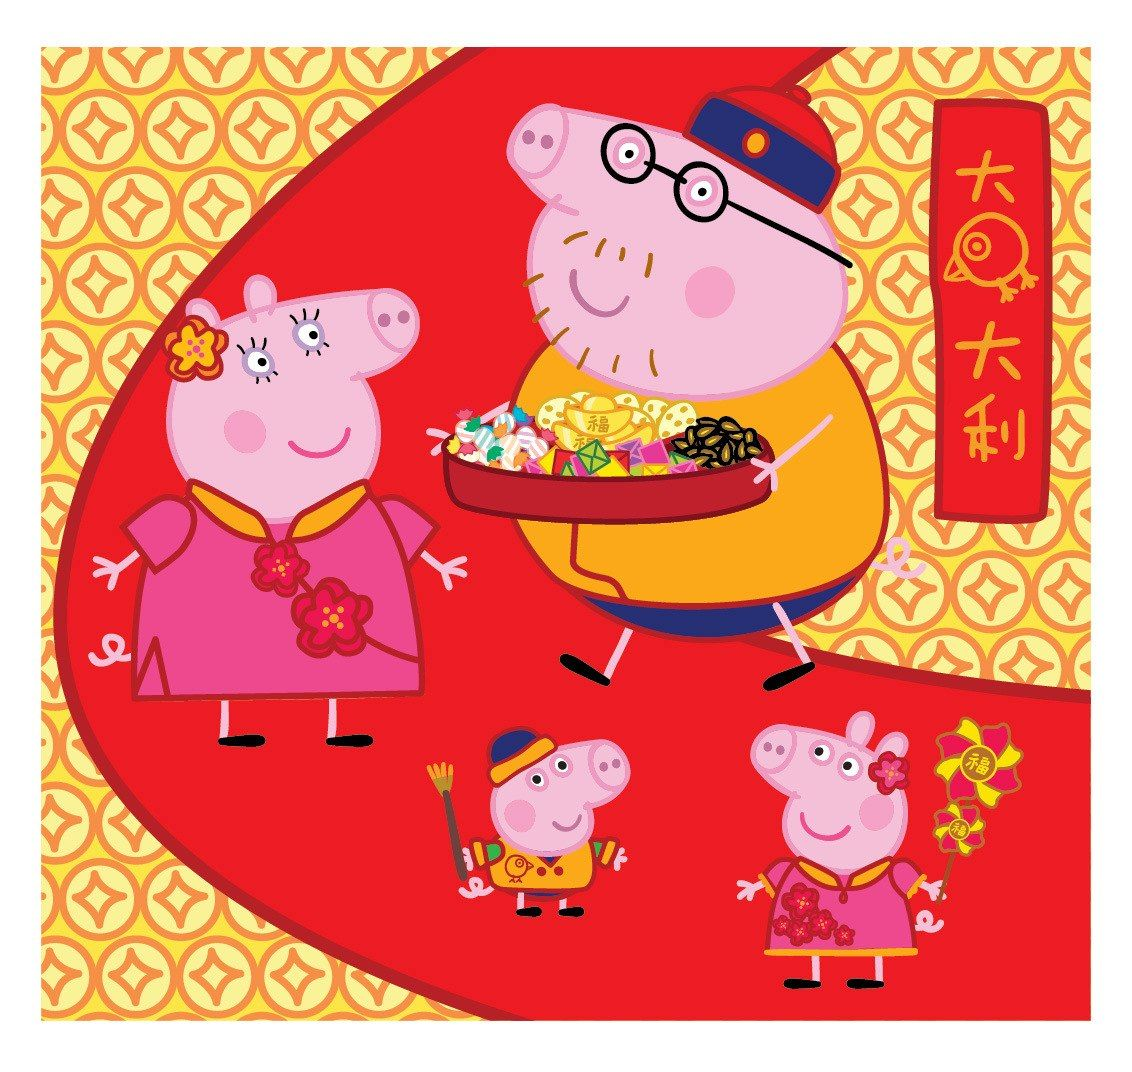 China's Year of the 'Peppa Pig' Animation World Network